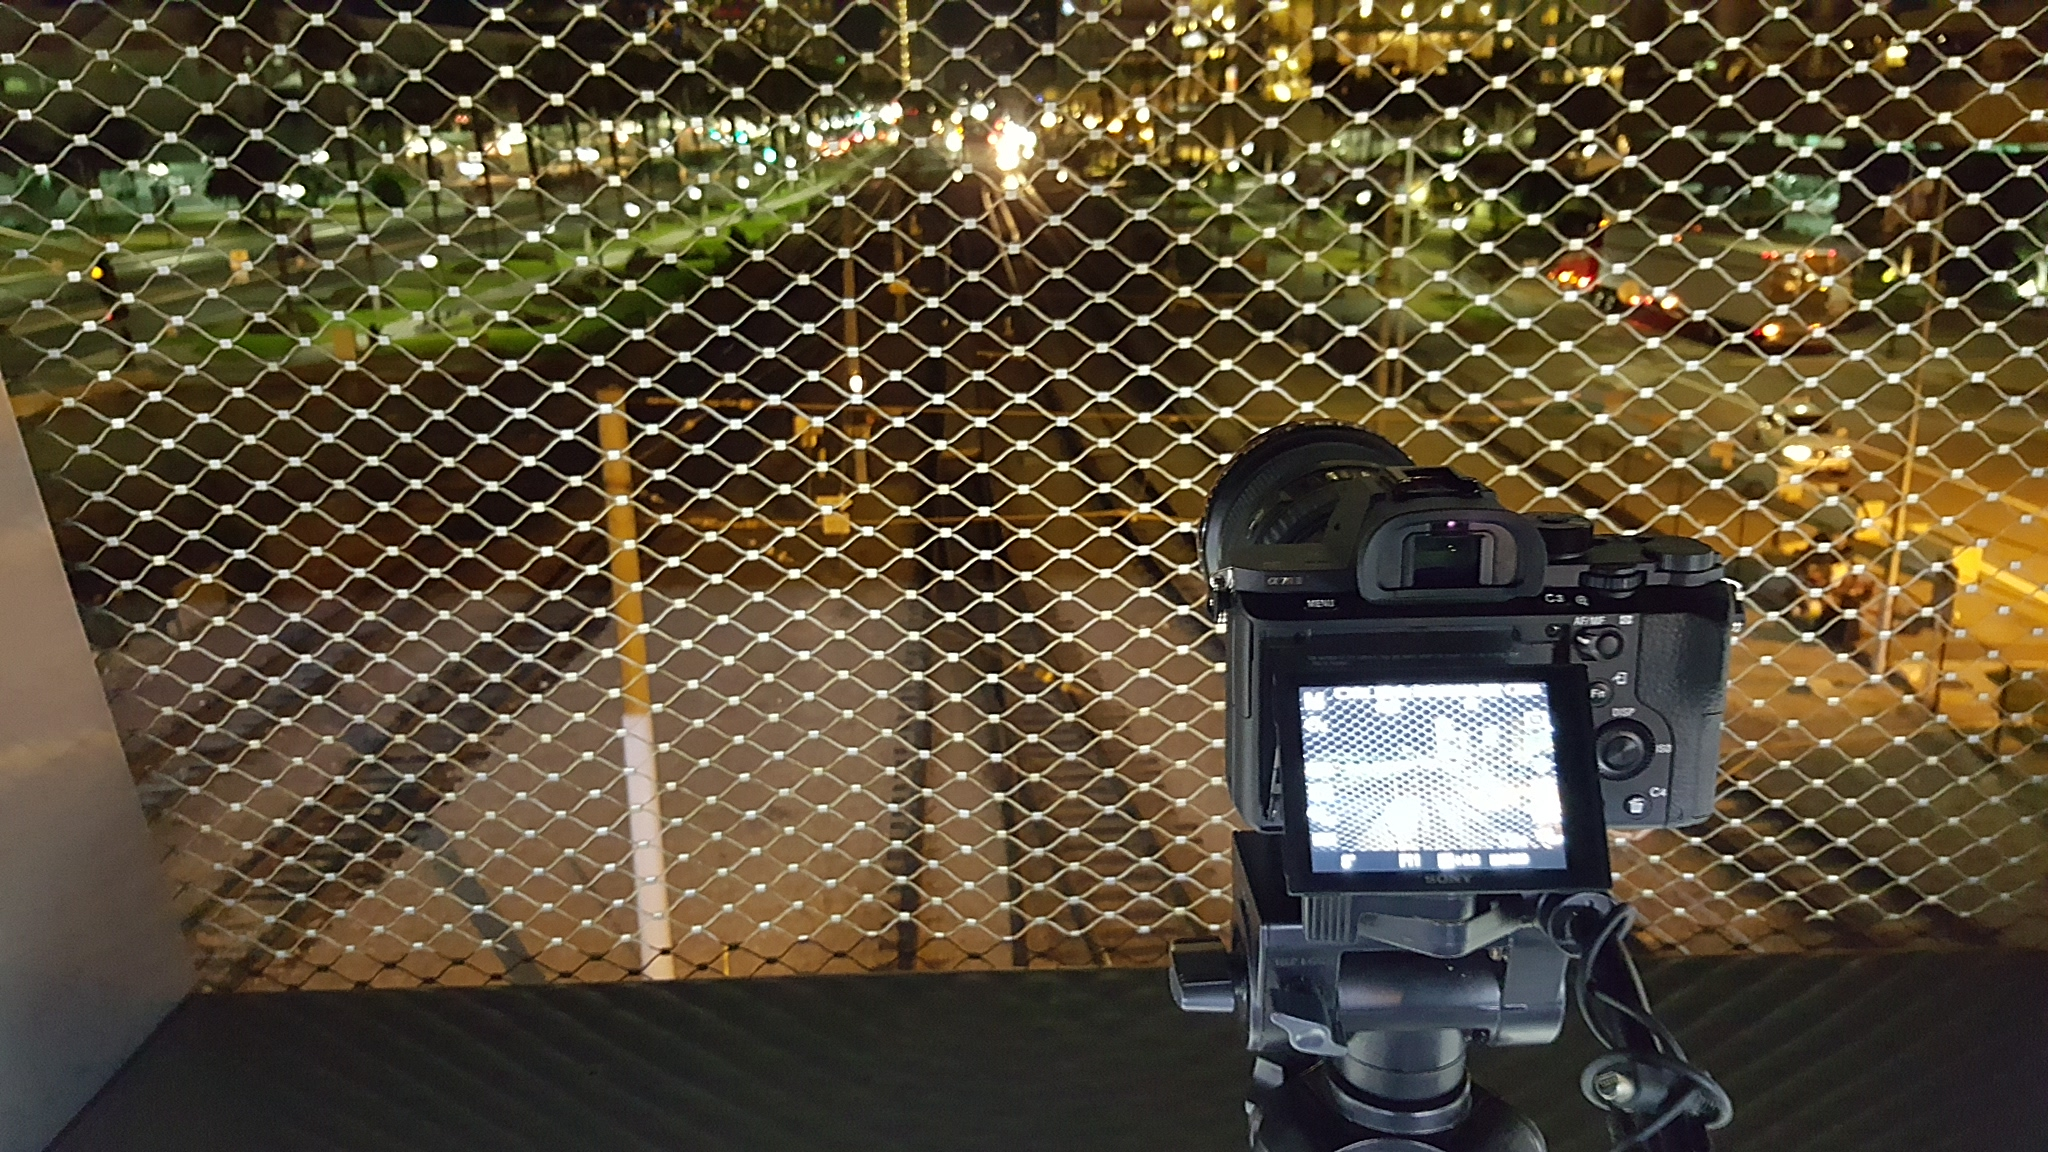 Here is a behind the scenes picture i took with my Samsung Note 5.